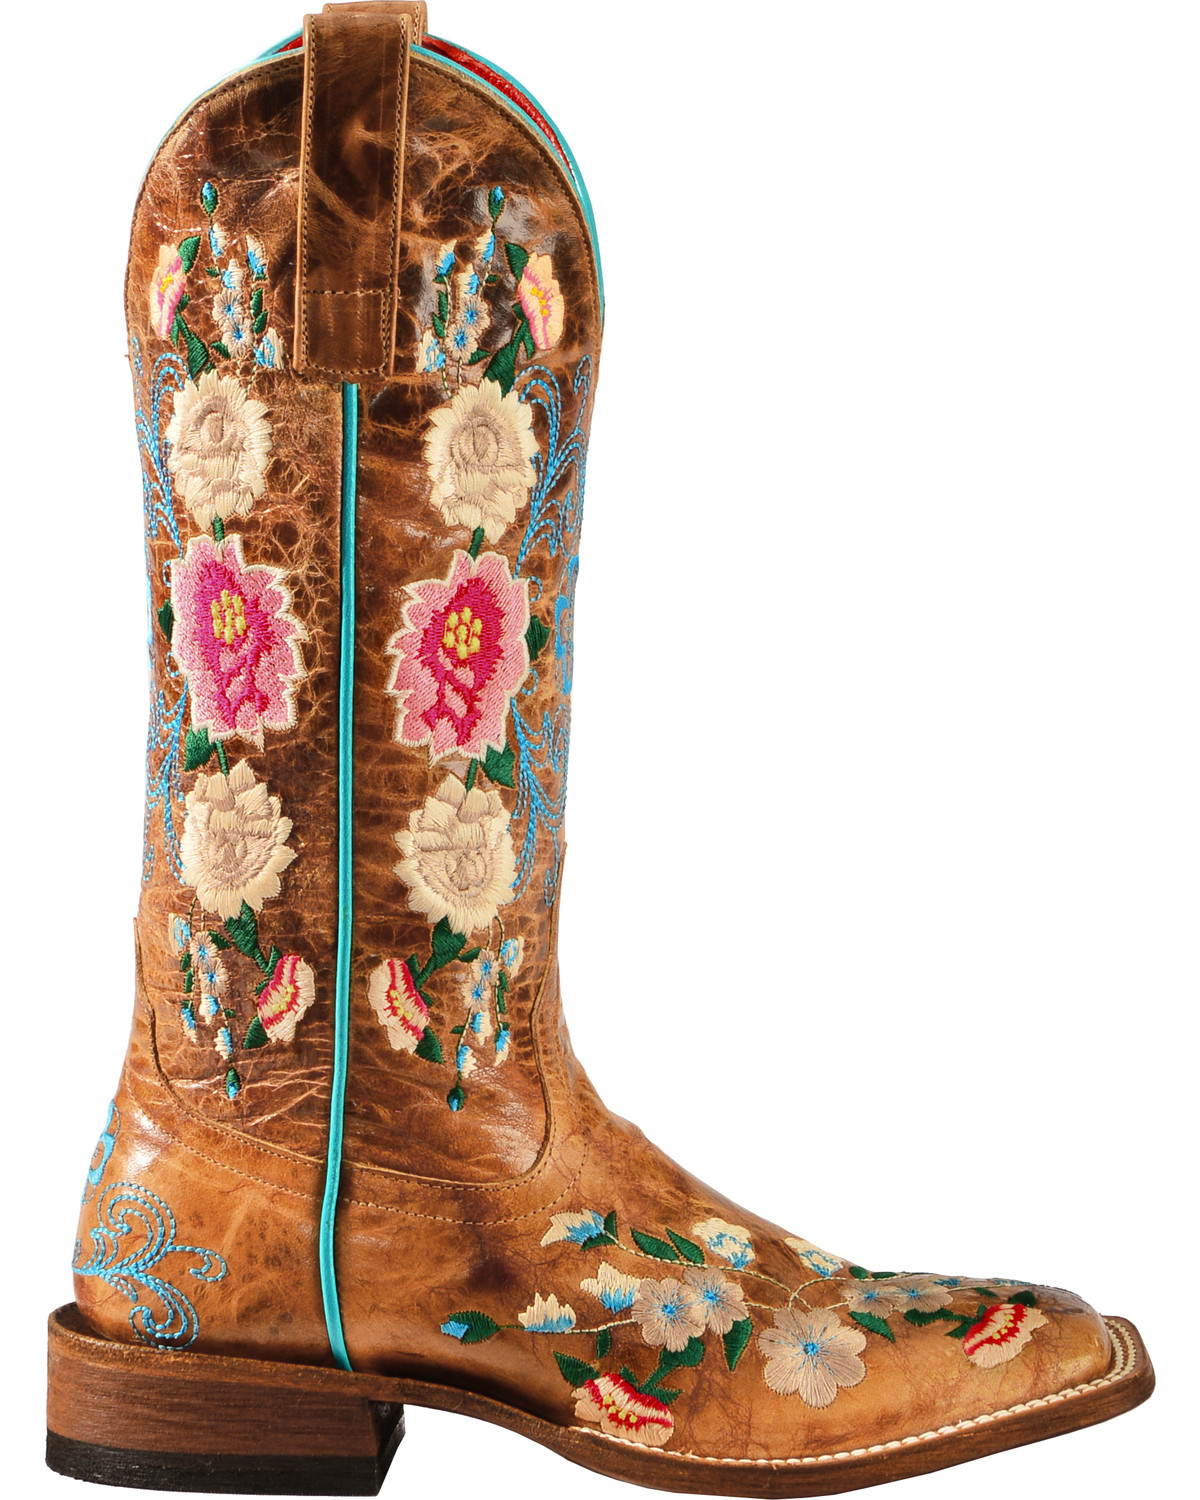 Macie Bean Rose Garden Cowgirl Boots Square Toe Boot Barn